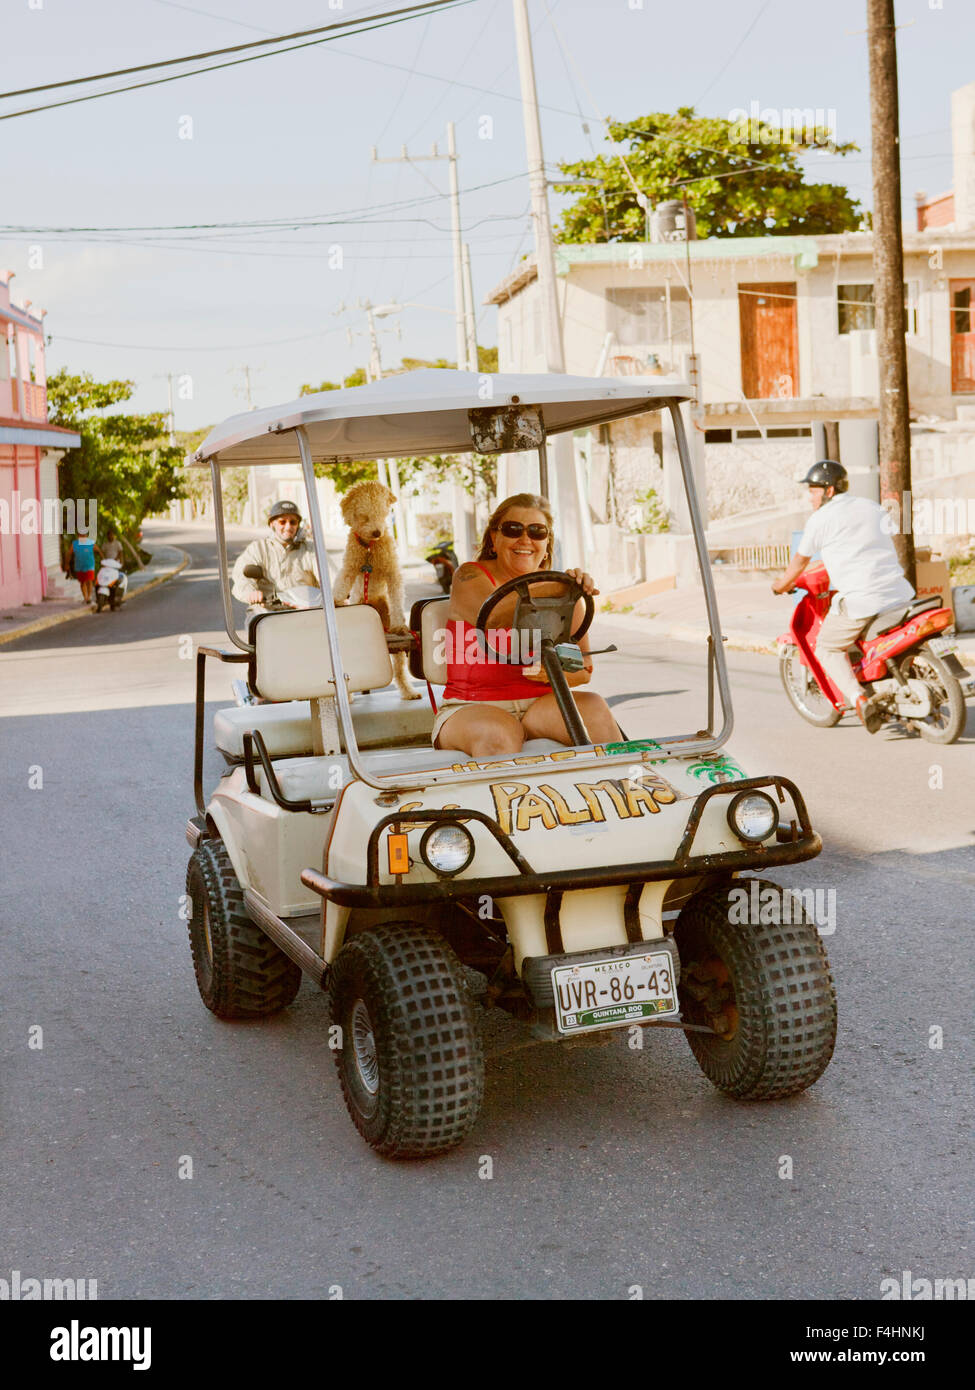 A local ex- pat drives her golf cart through town. IIsla Mujeres, Quintana Roo, Mexico. - Stock Image